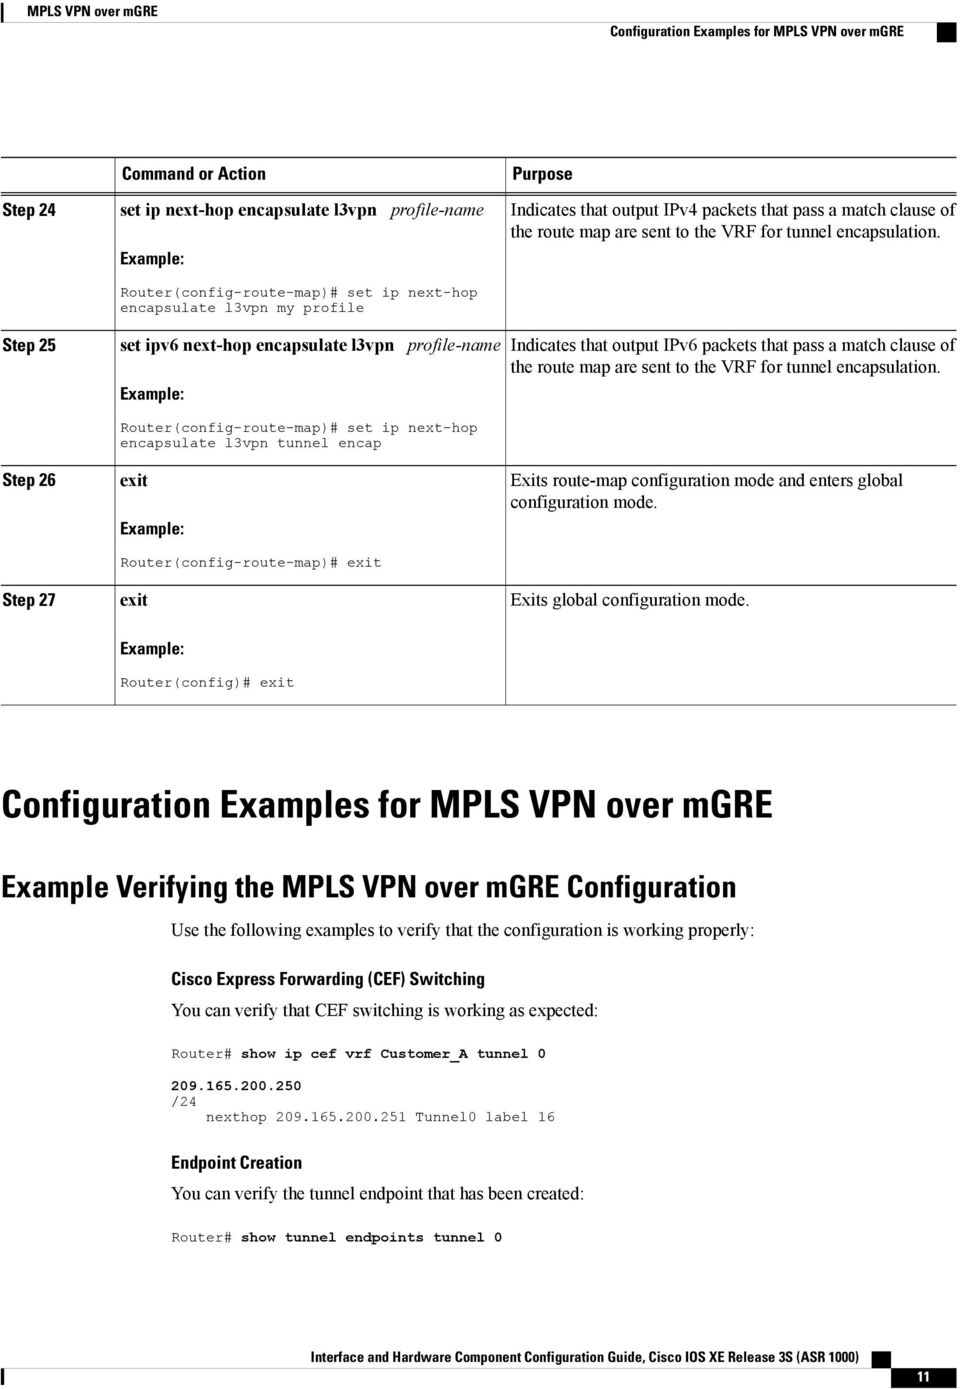 MPLS VPN over mgre  Finding Feature Information  Prerequisites for